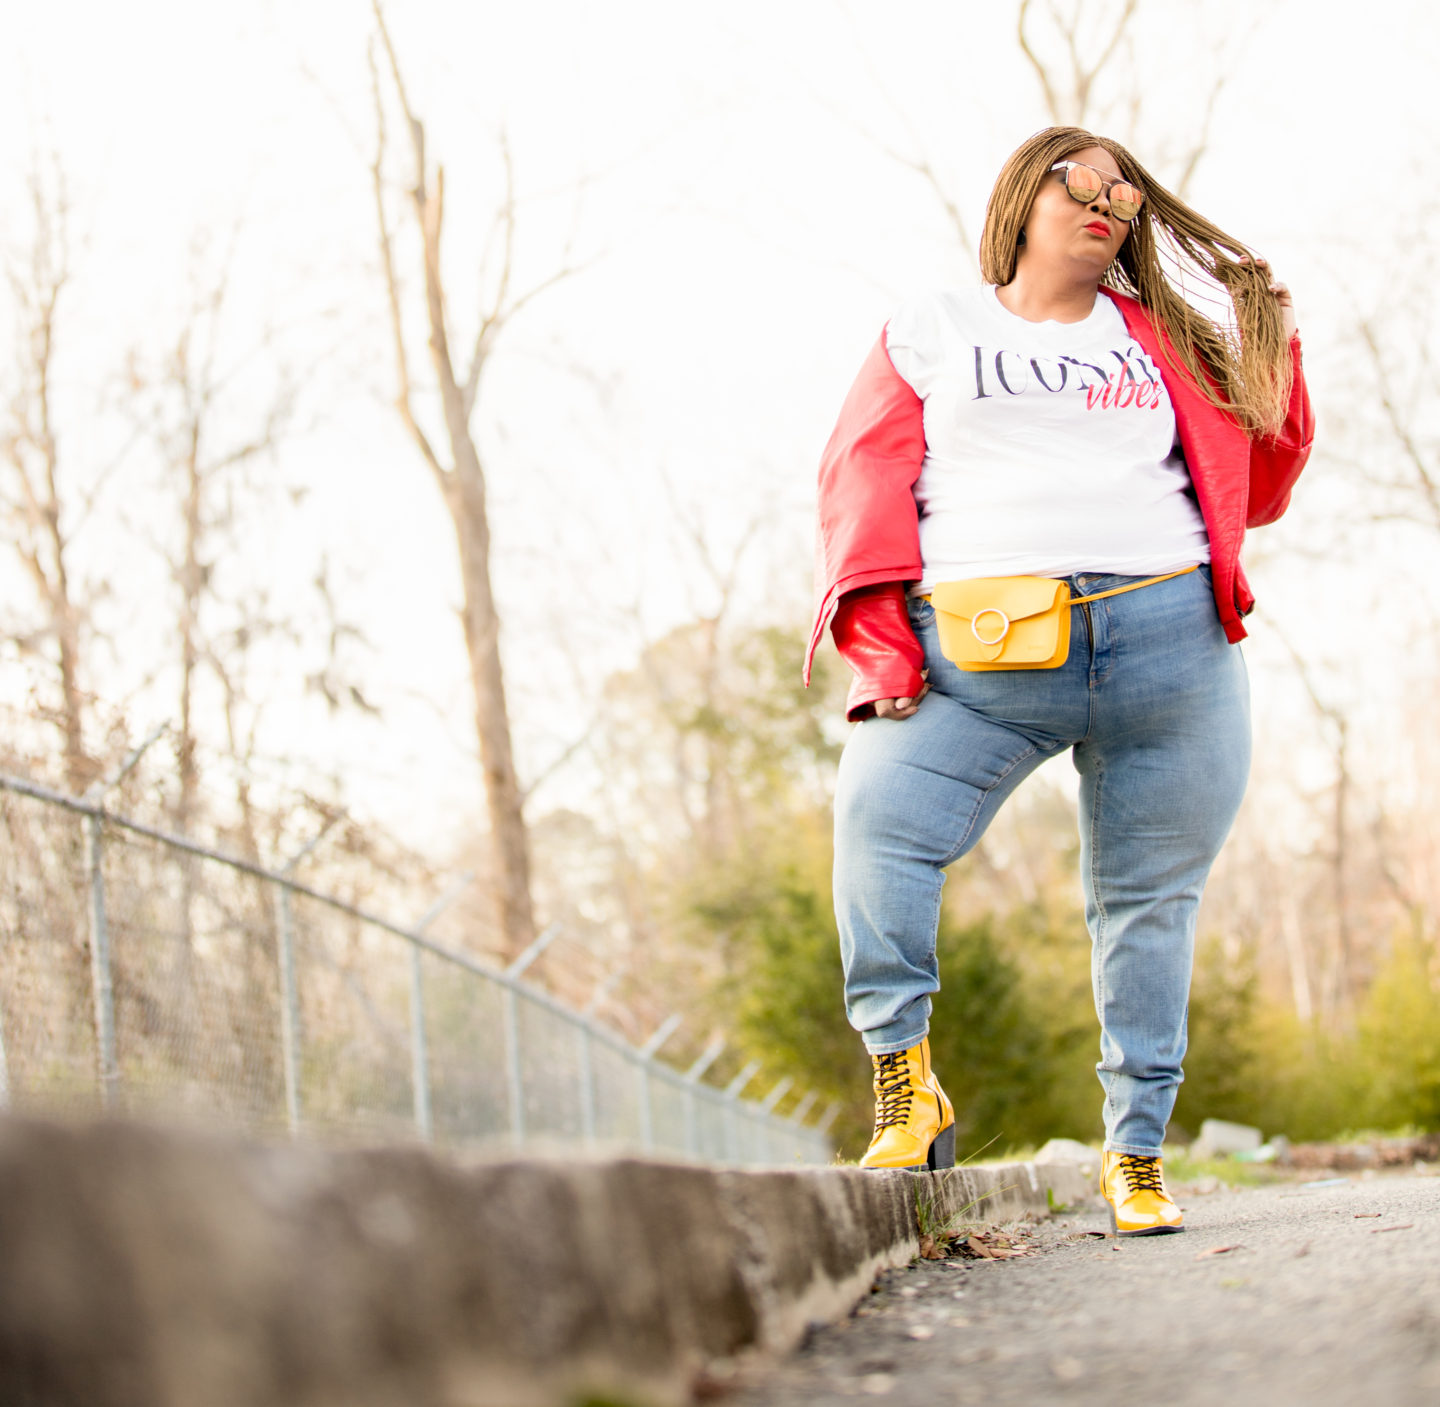 Maui B of PHAT Girl FRESh wearing Old Navy jeans